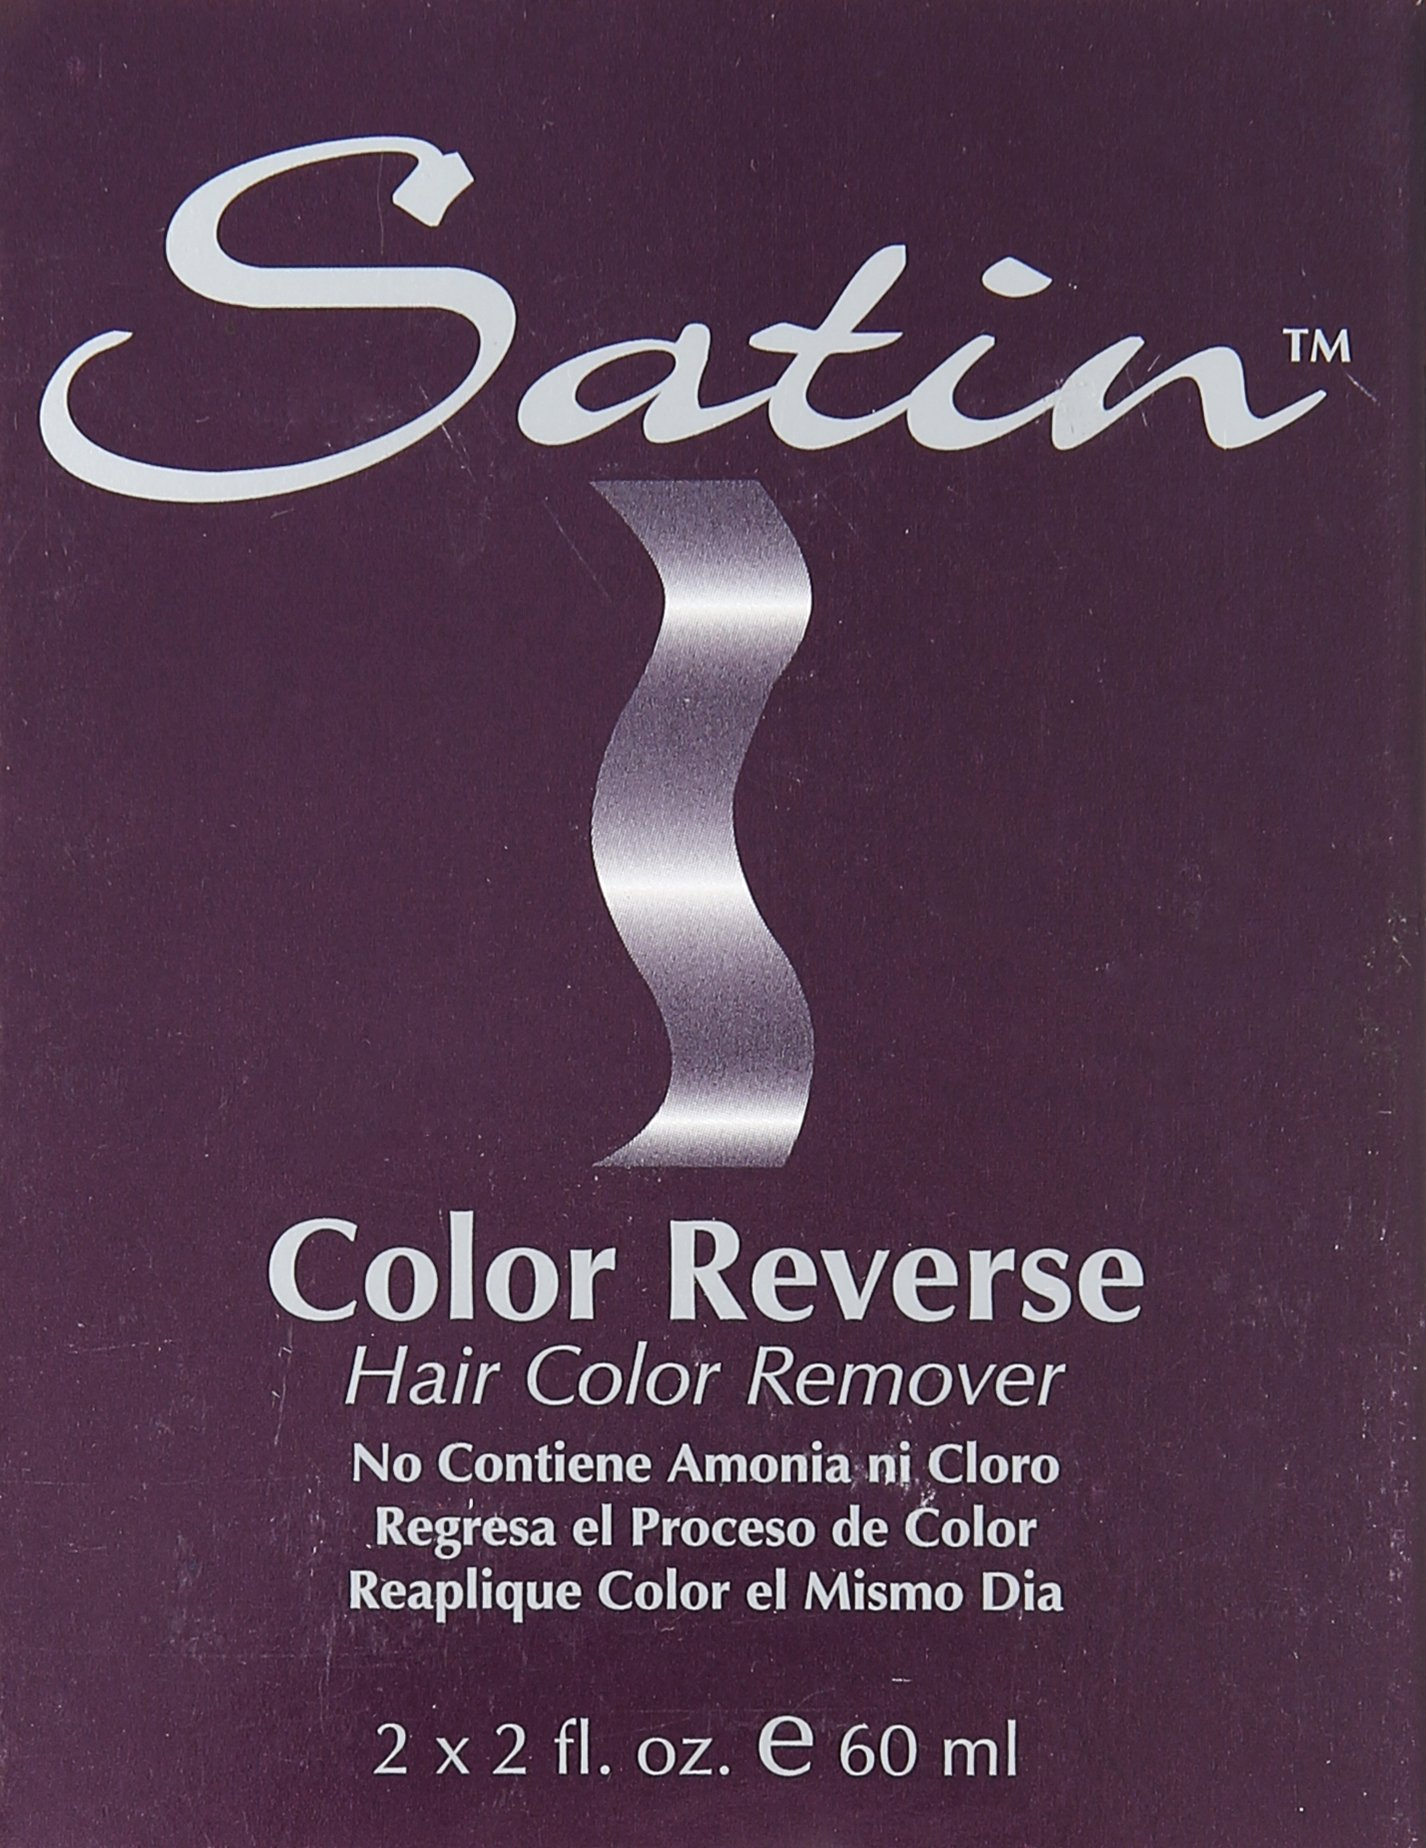 SATIN Color Reverse Hair Color Remover, Kit by Satin